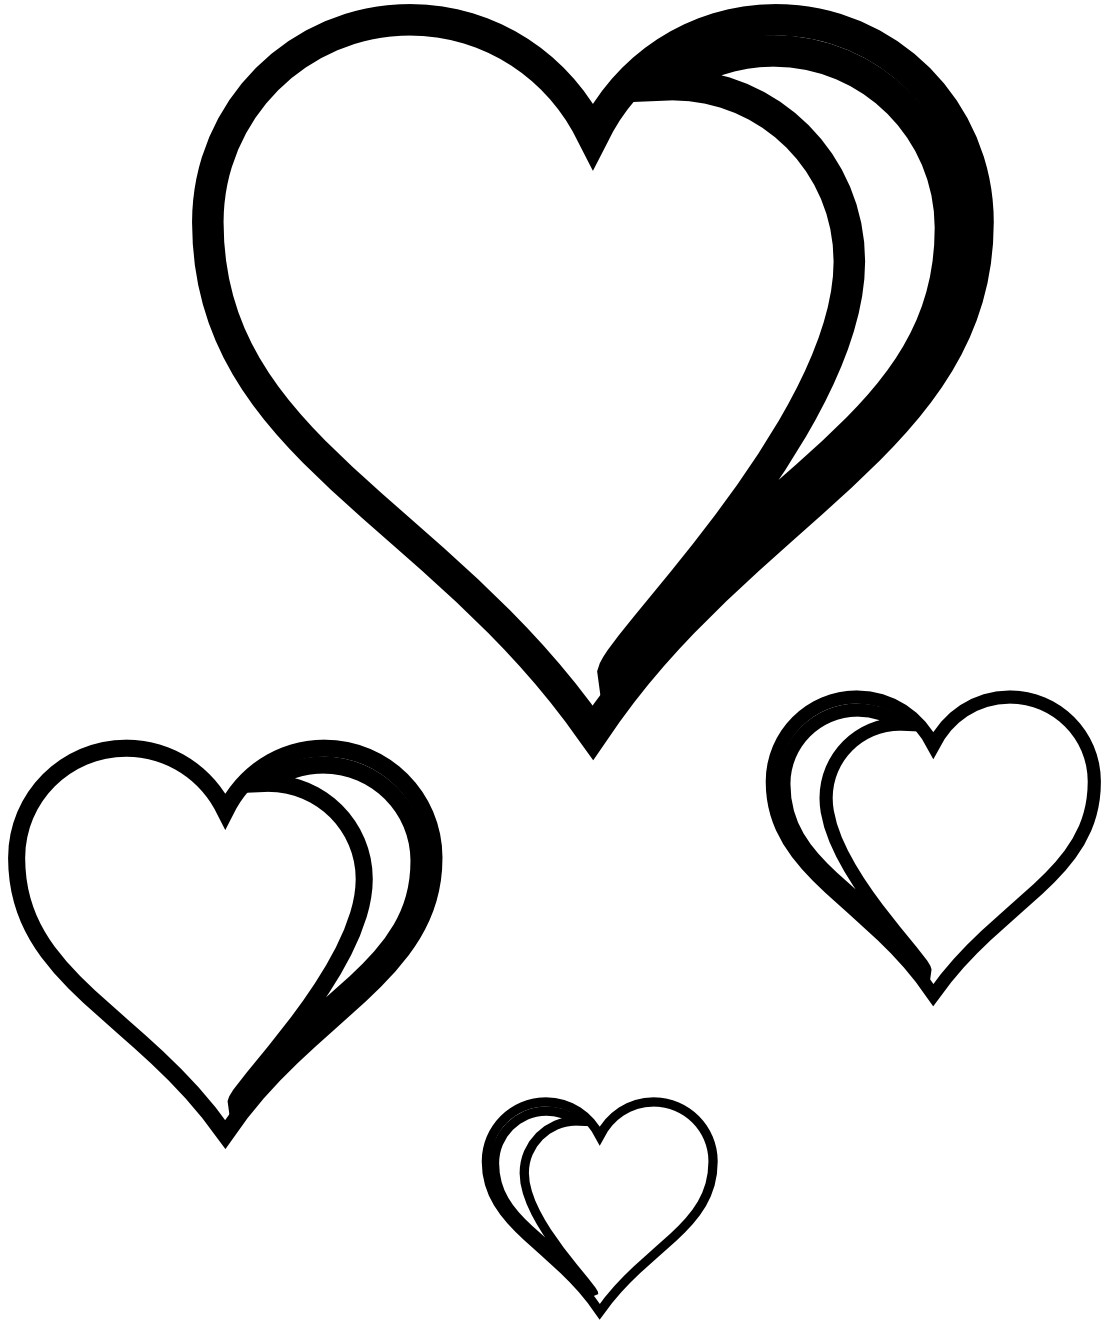 Real heart clipart black and white clip library stock Real Heart Clipart Black And White | Letters Format clip library stock